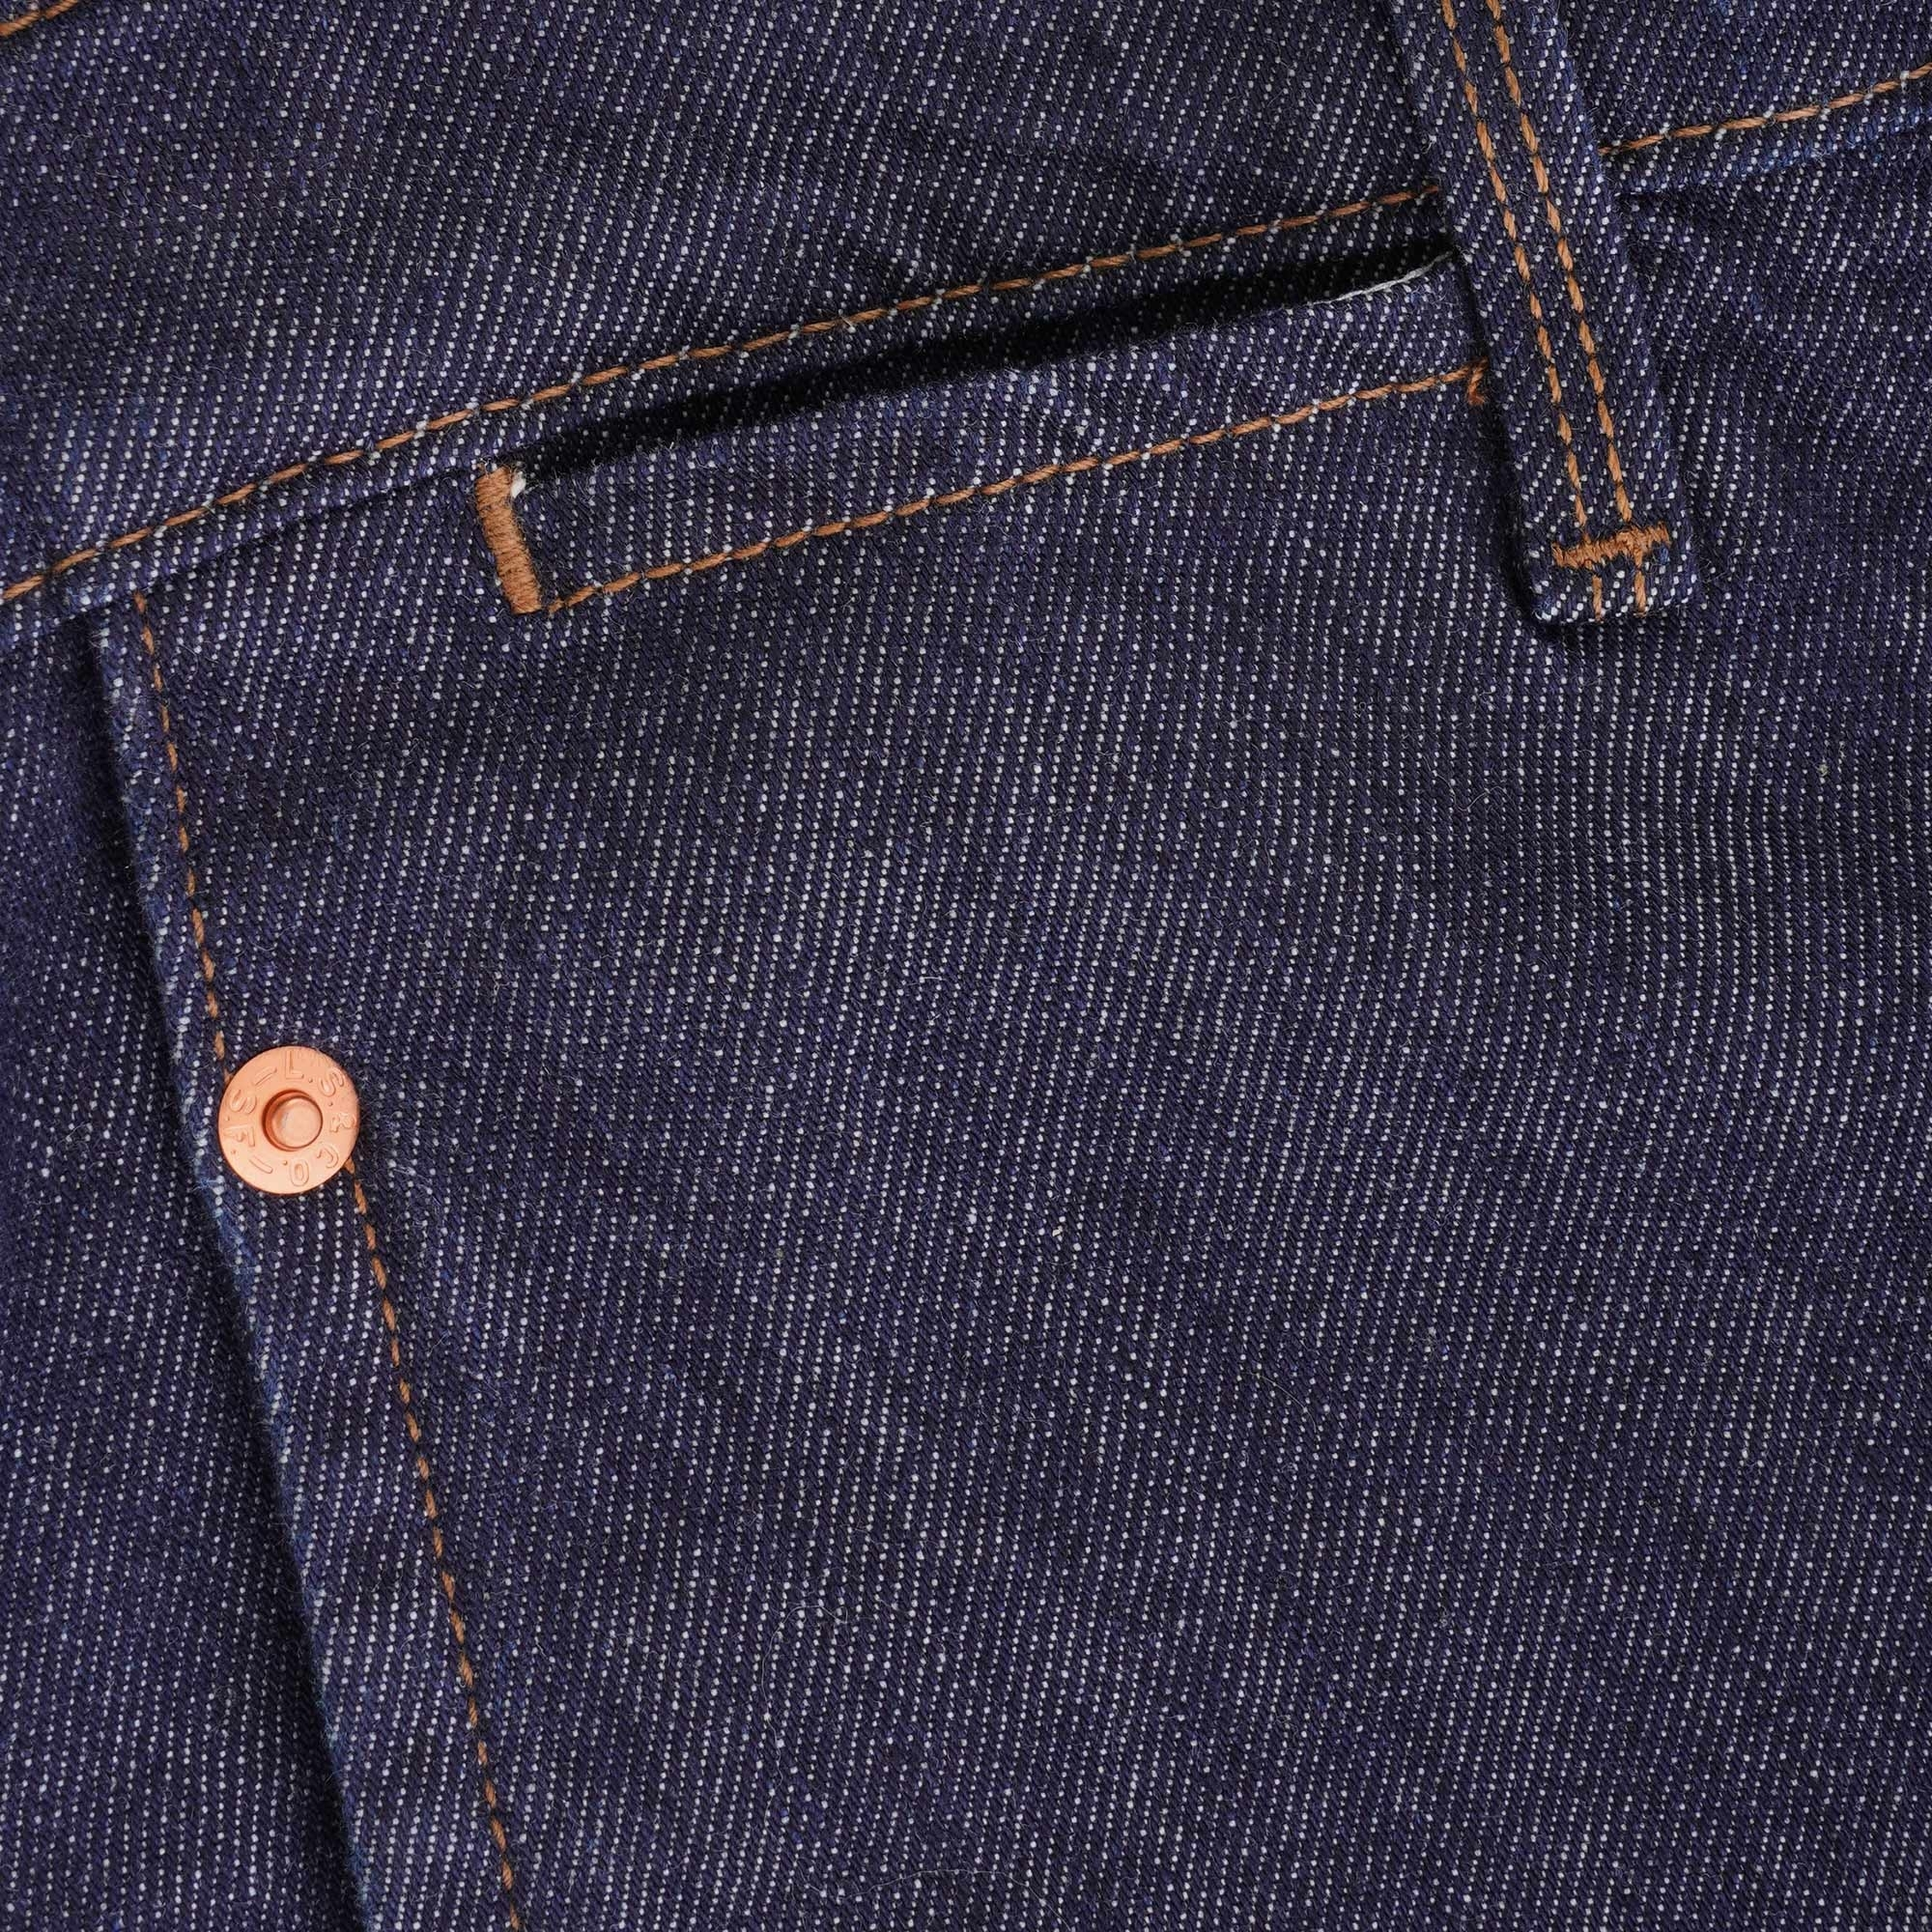 FitRinse Levi's Engineered 72777 Baggy 570 Tapered Jeans 0000 nwkXZN8P0O